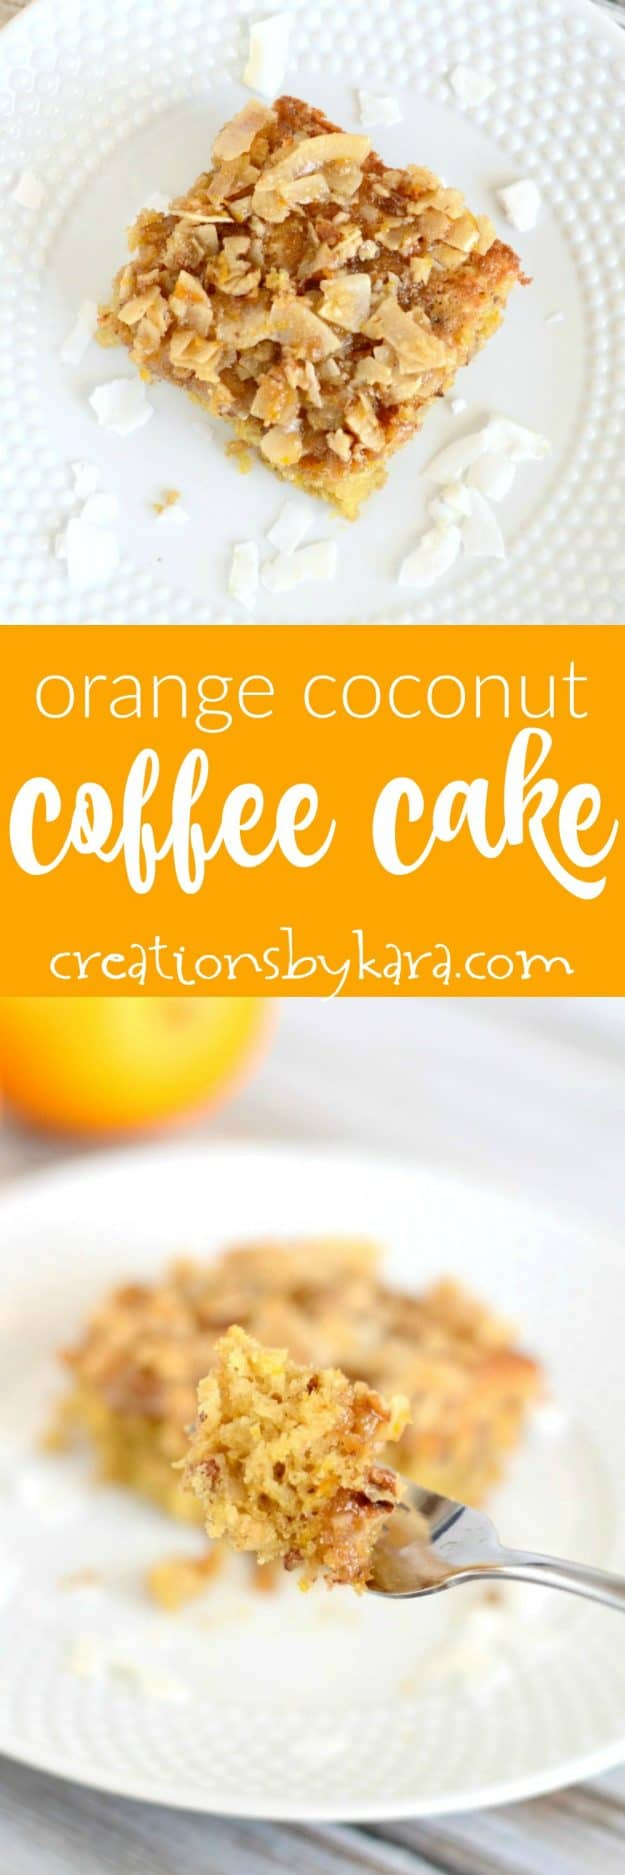 With the fresh taste of orange and a crunchy coconut topping, this Coconut Orange Coffee Cake is a perfect spring brunch recipe! Such a tasty coffee cake recipe.